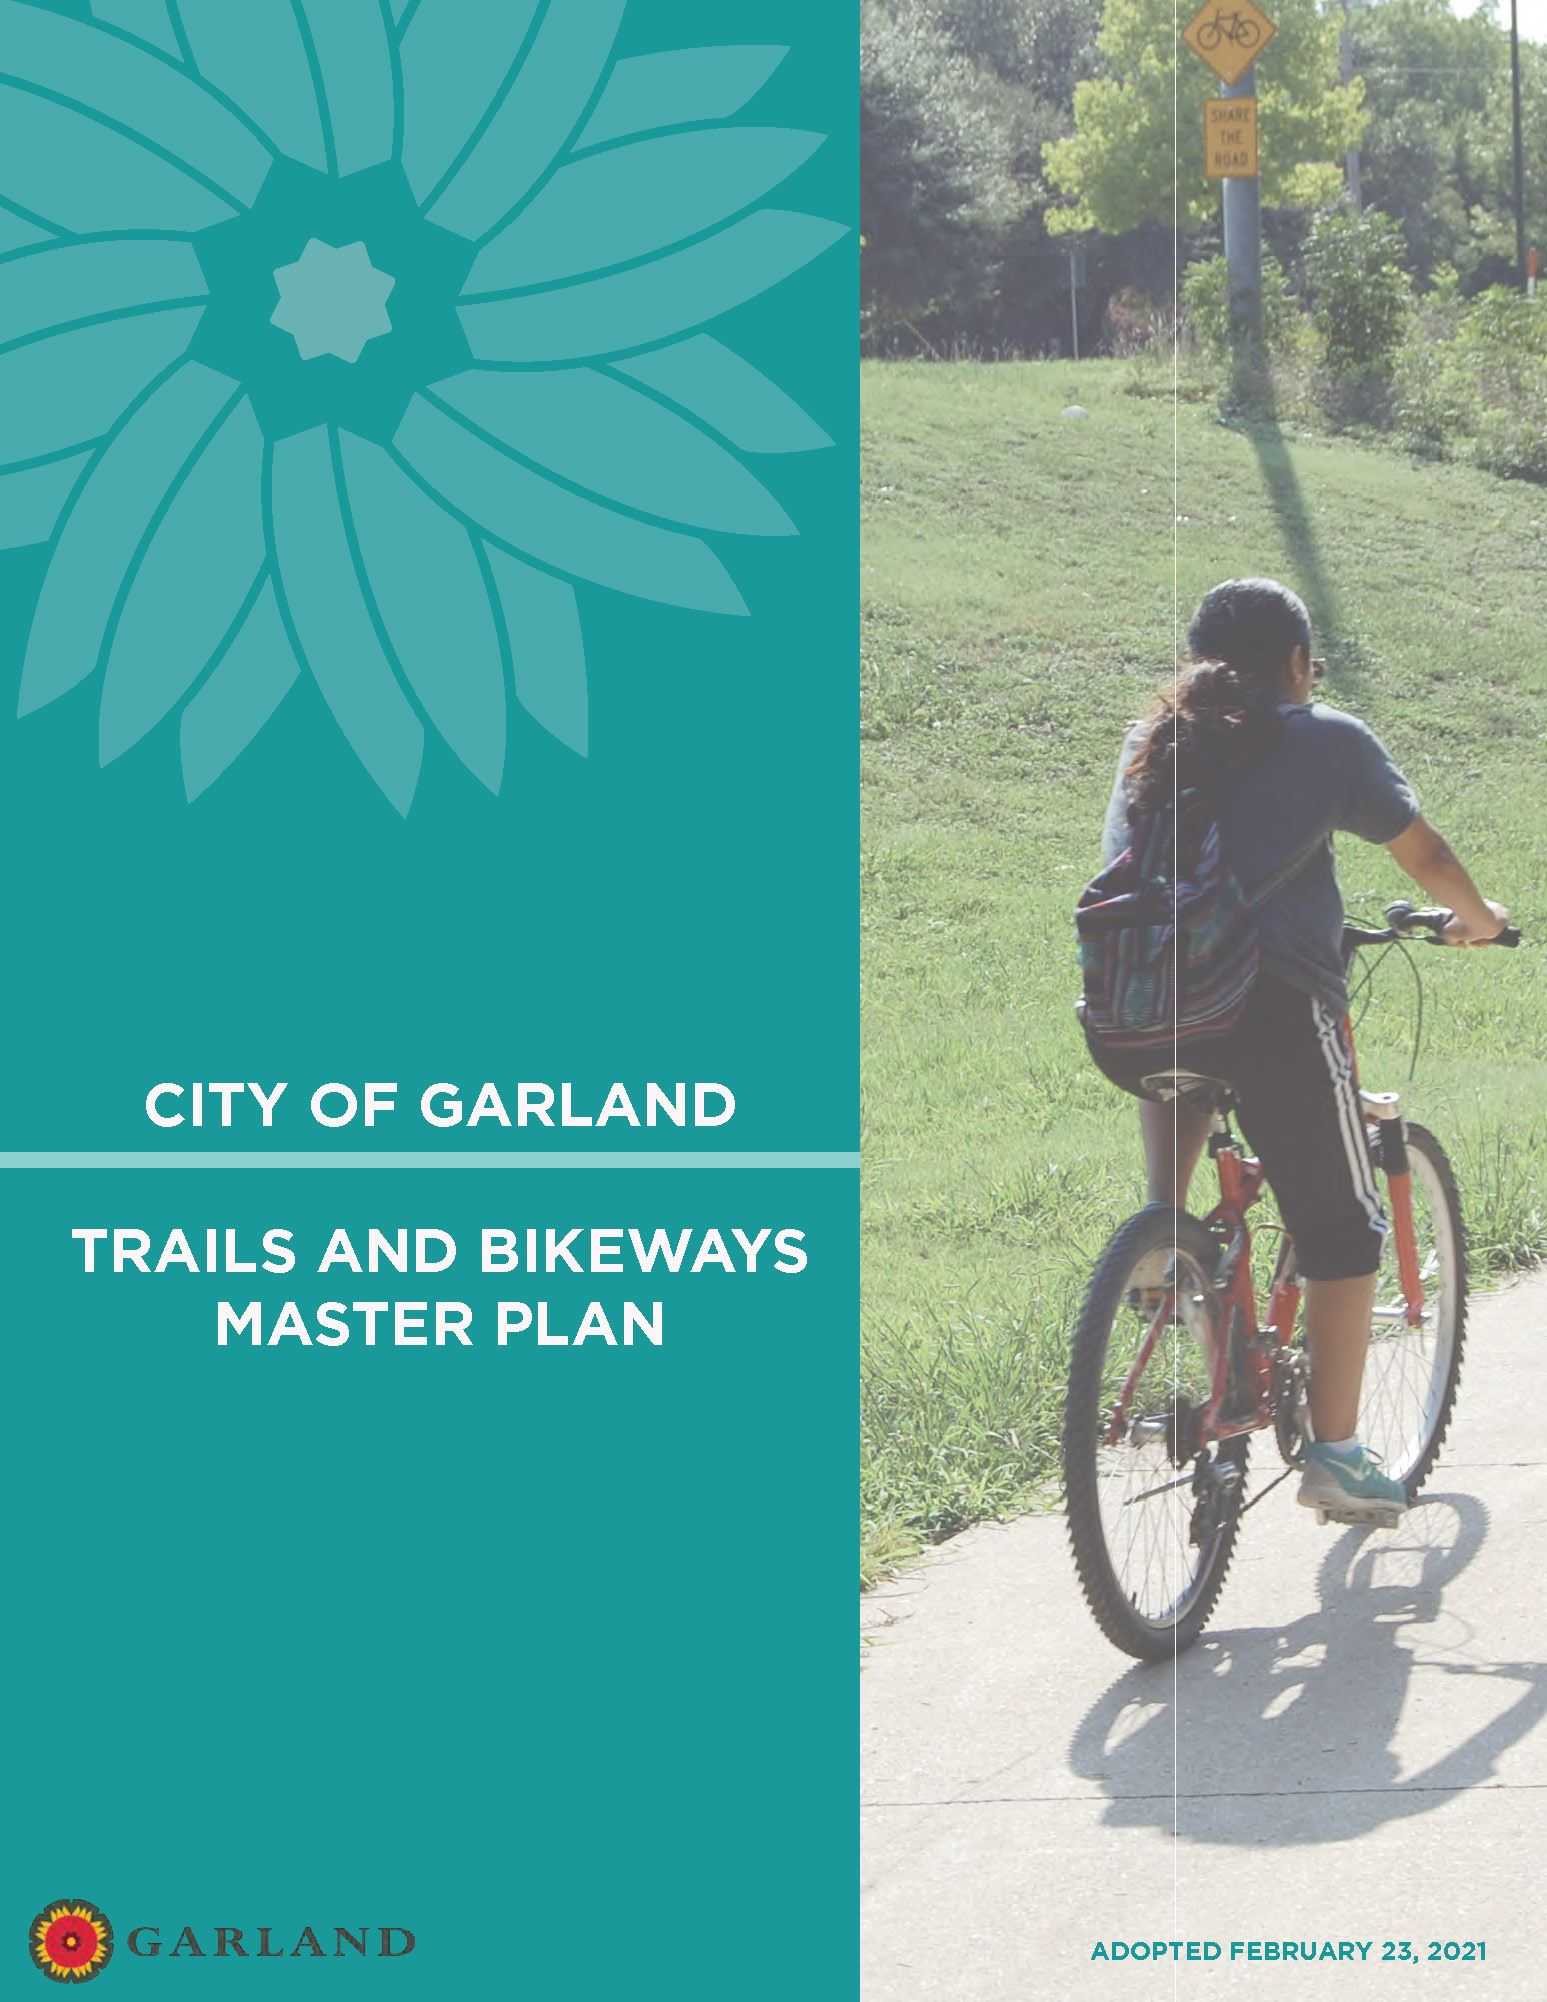 Garland Trails and Bikeways Master Plan_title page with girl on bike